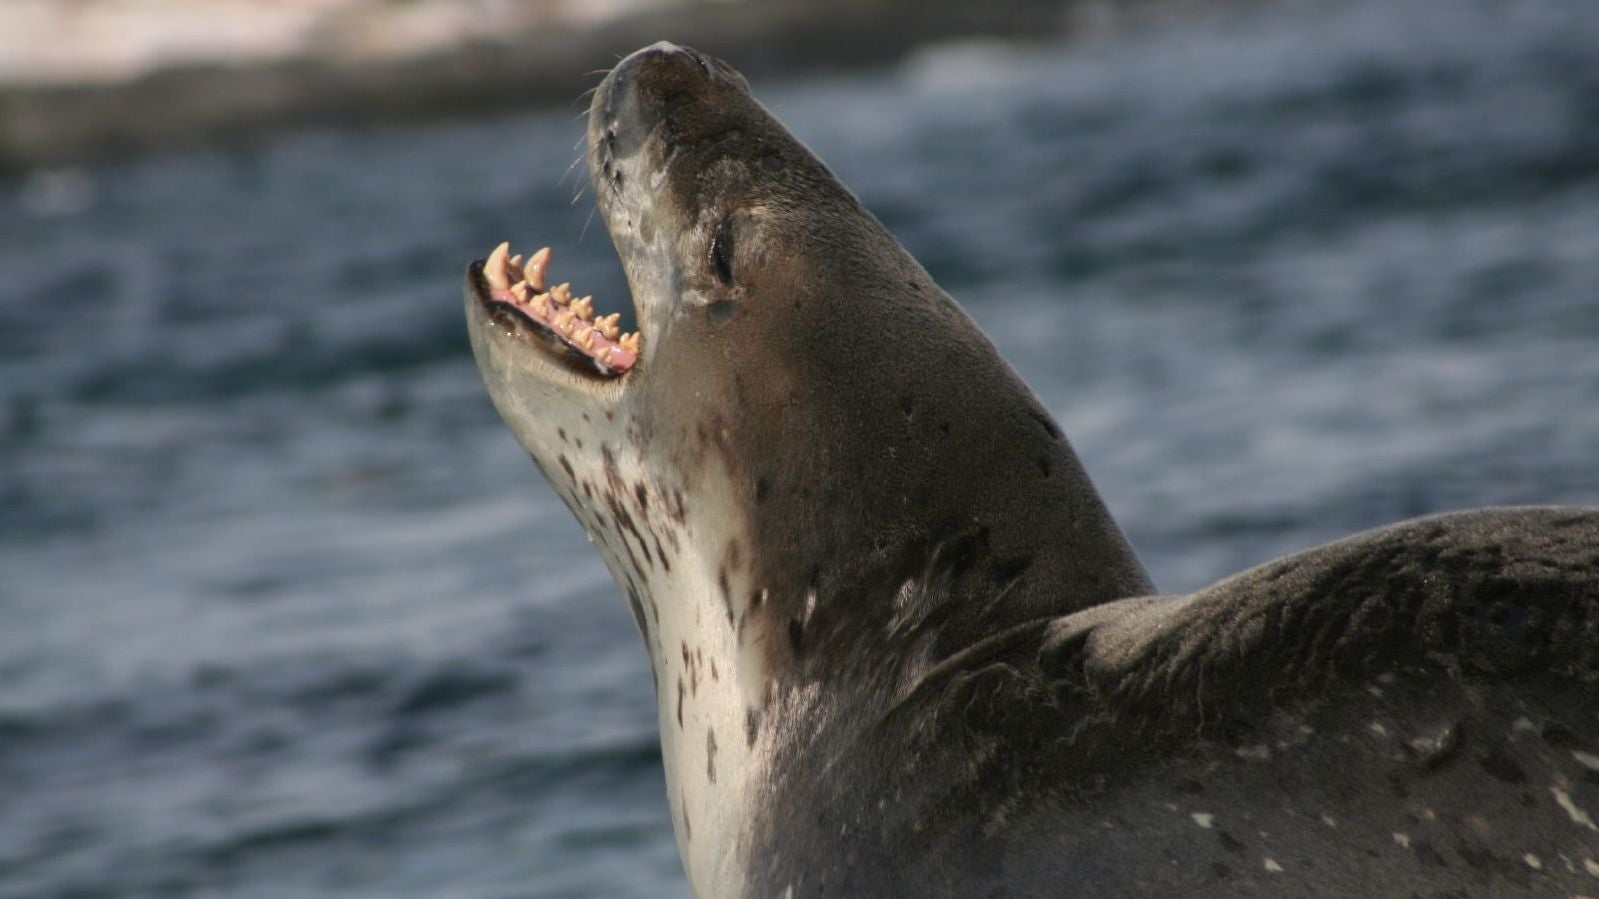 Seal Poop Thumb Drive Mystery (Partially) Solved As Owner Steps Forward